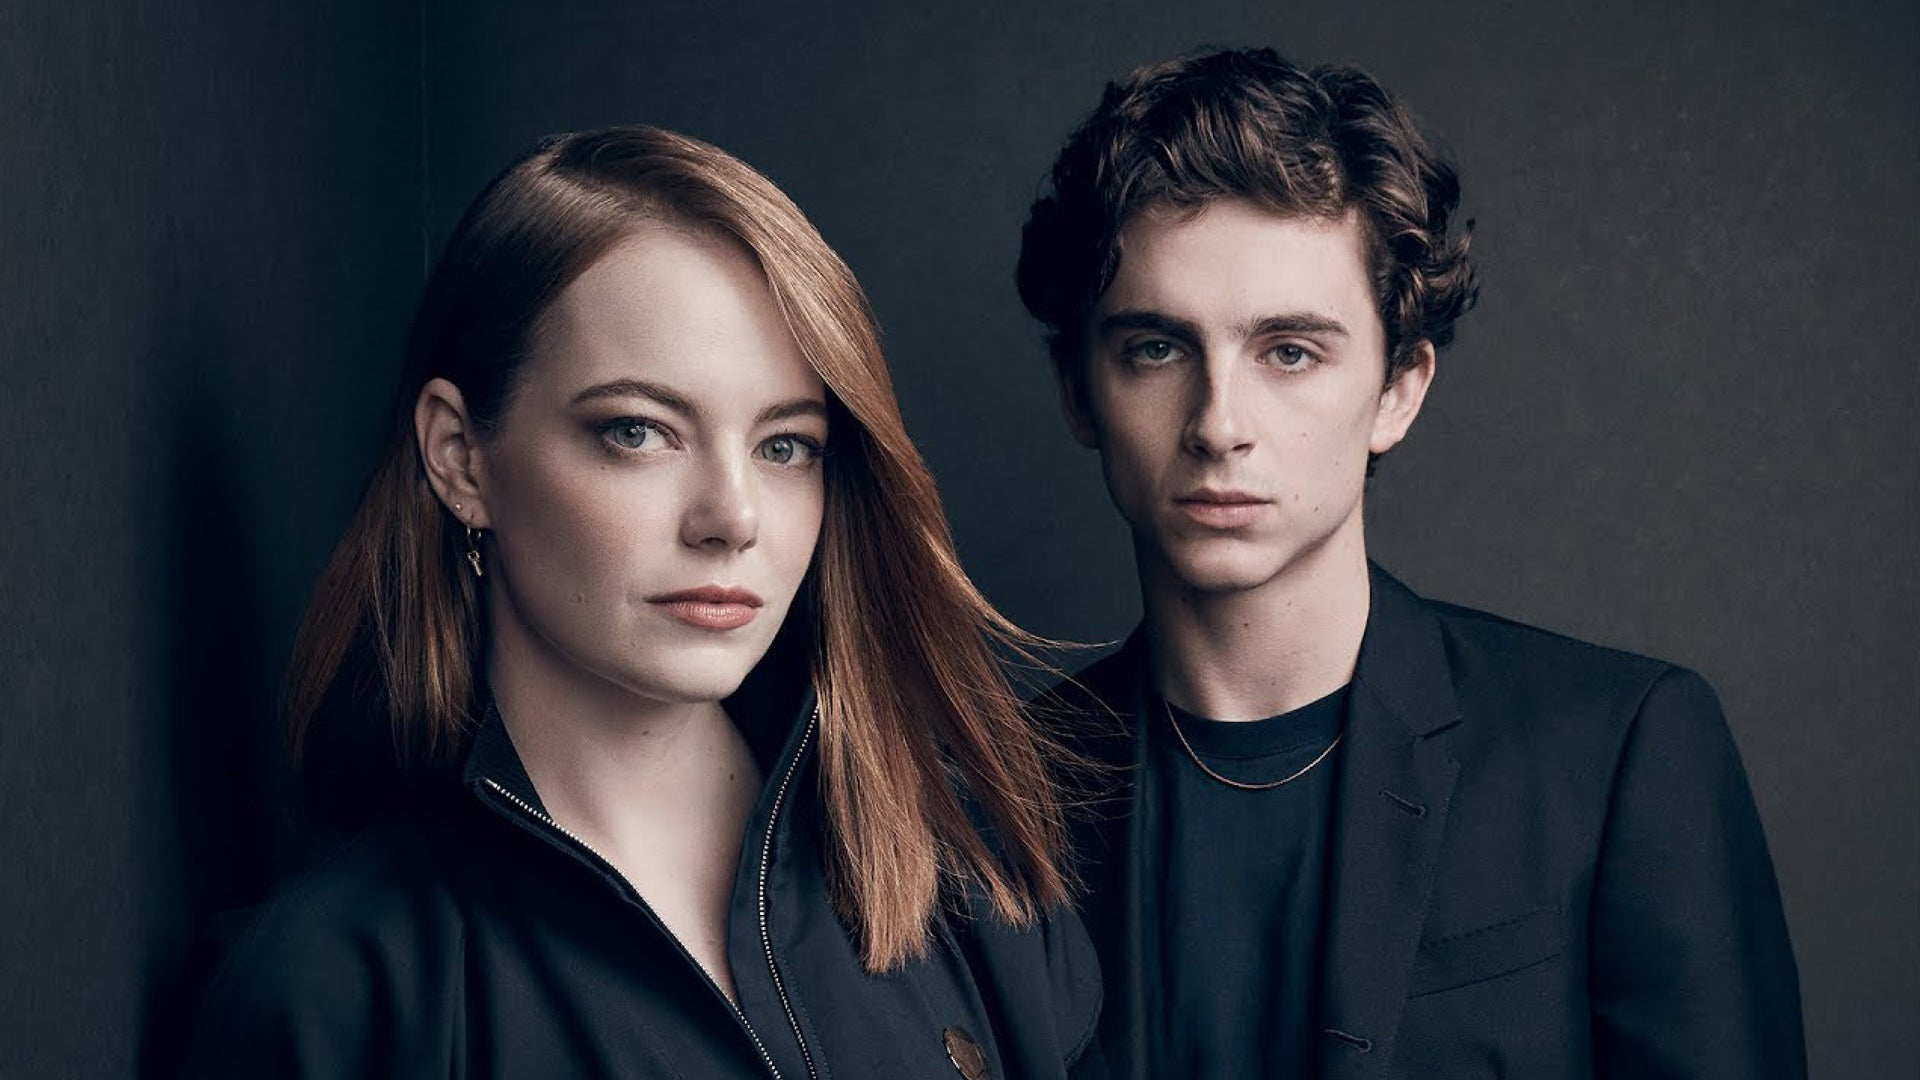 Timothée Chalamet & Emma Stone Actors on Actors